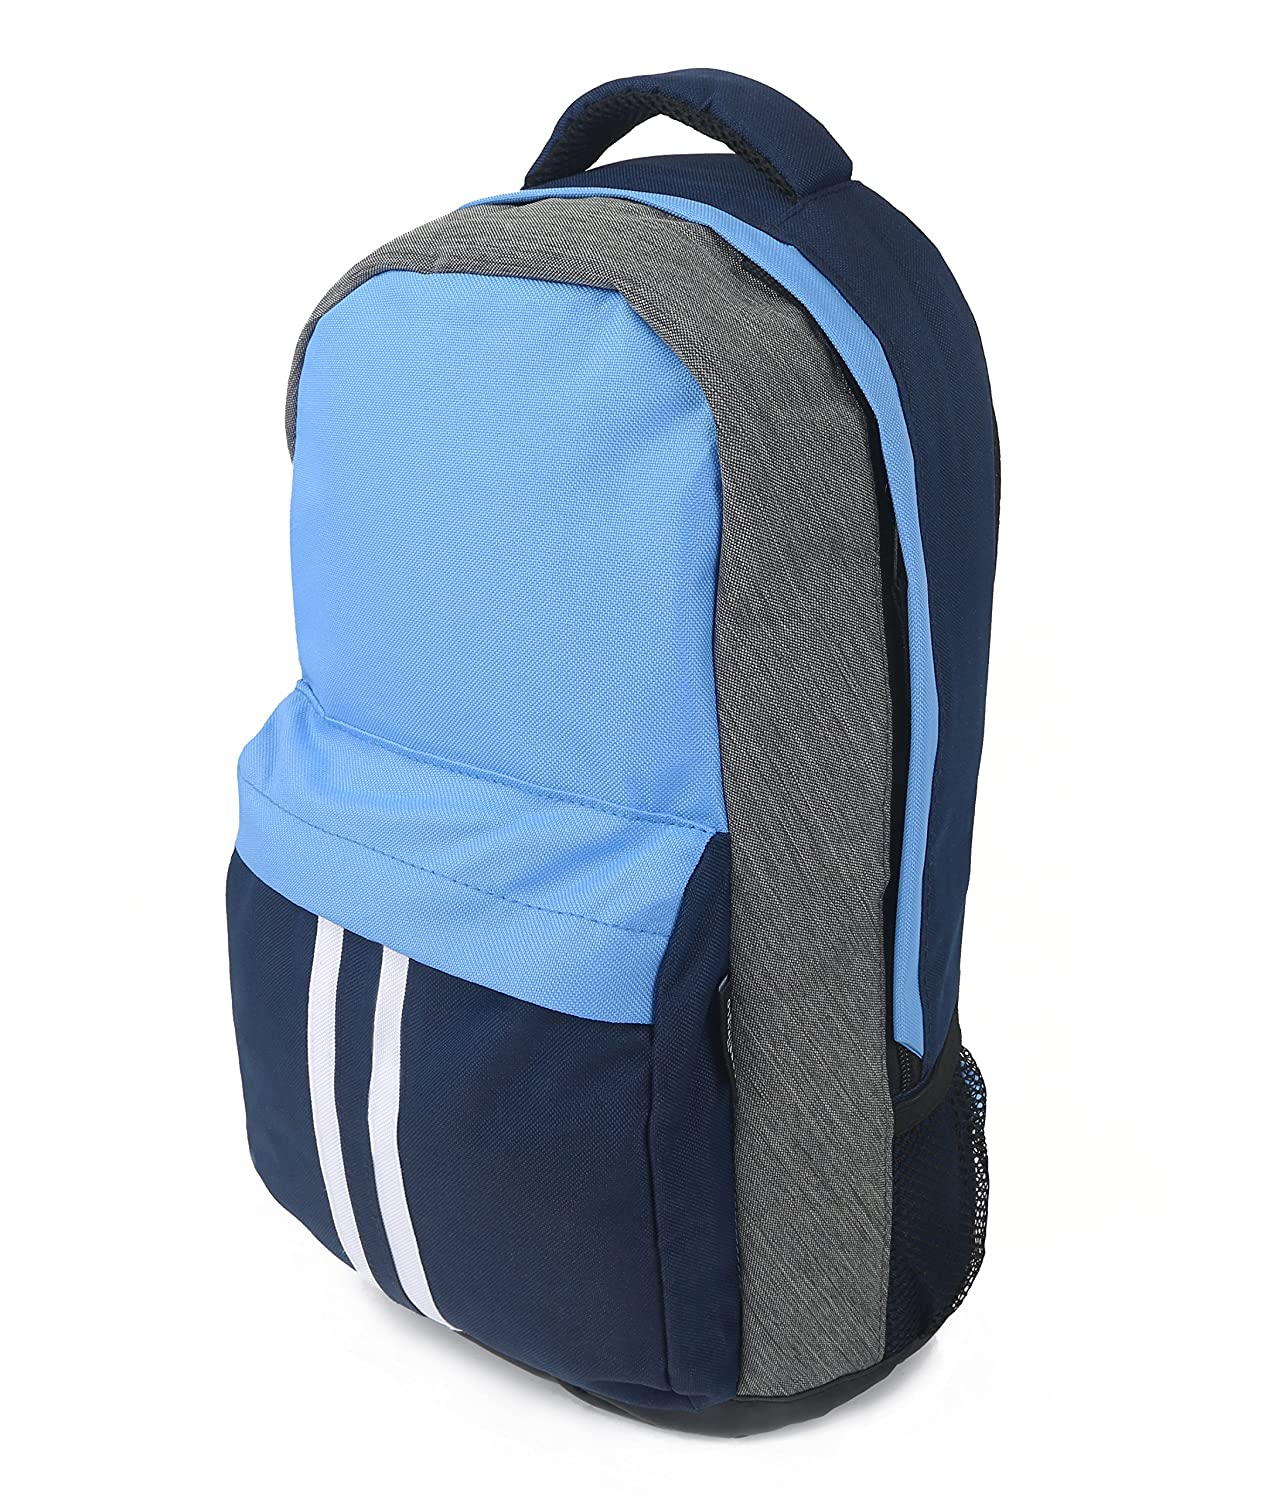 Greenfield Collection Navy Blue 20 Litre Backpack Cool Bag CB012H